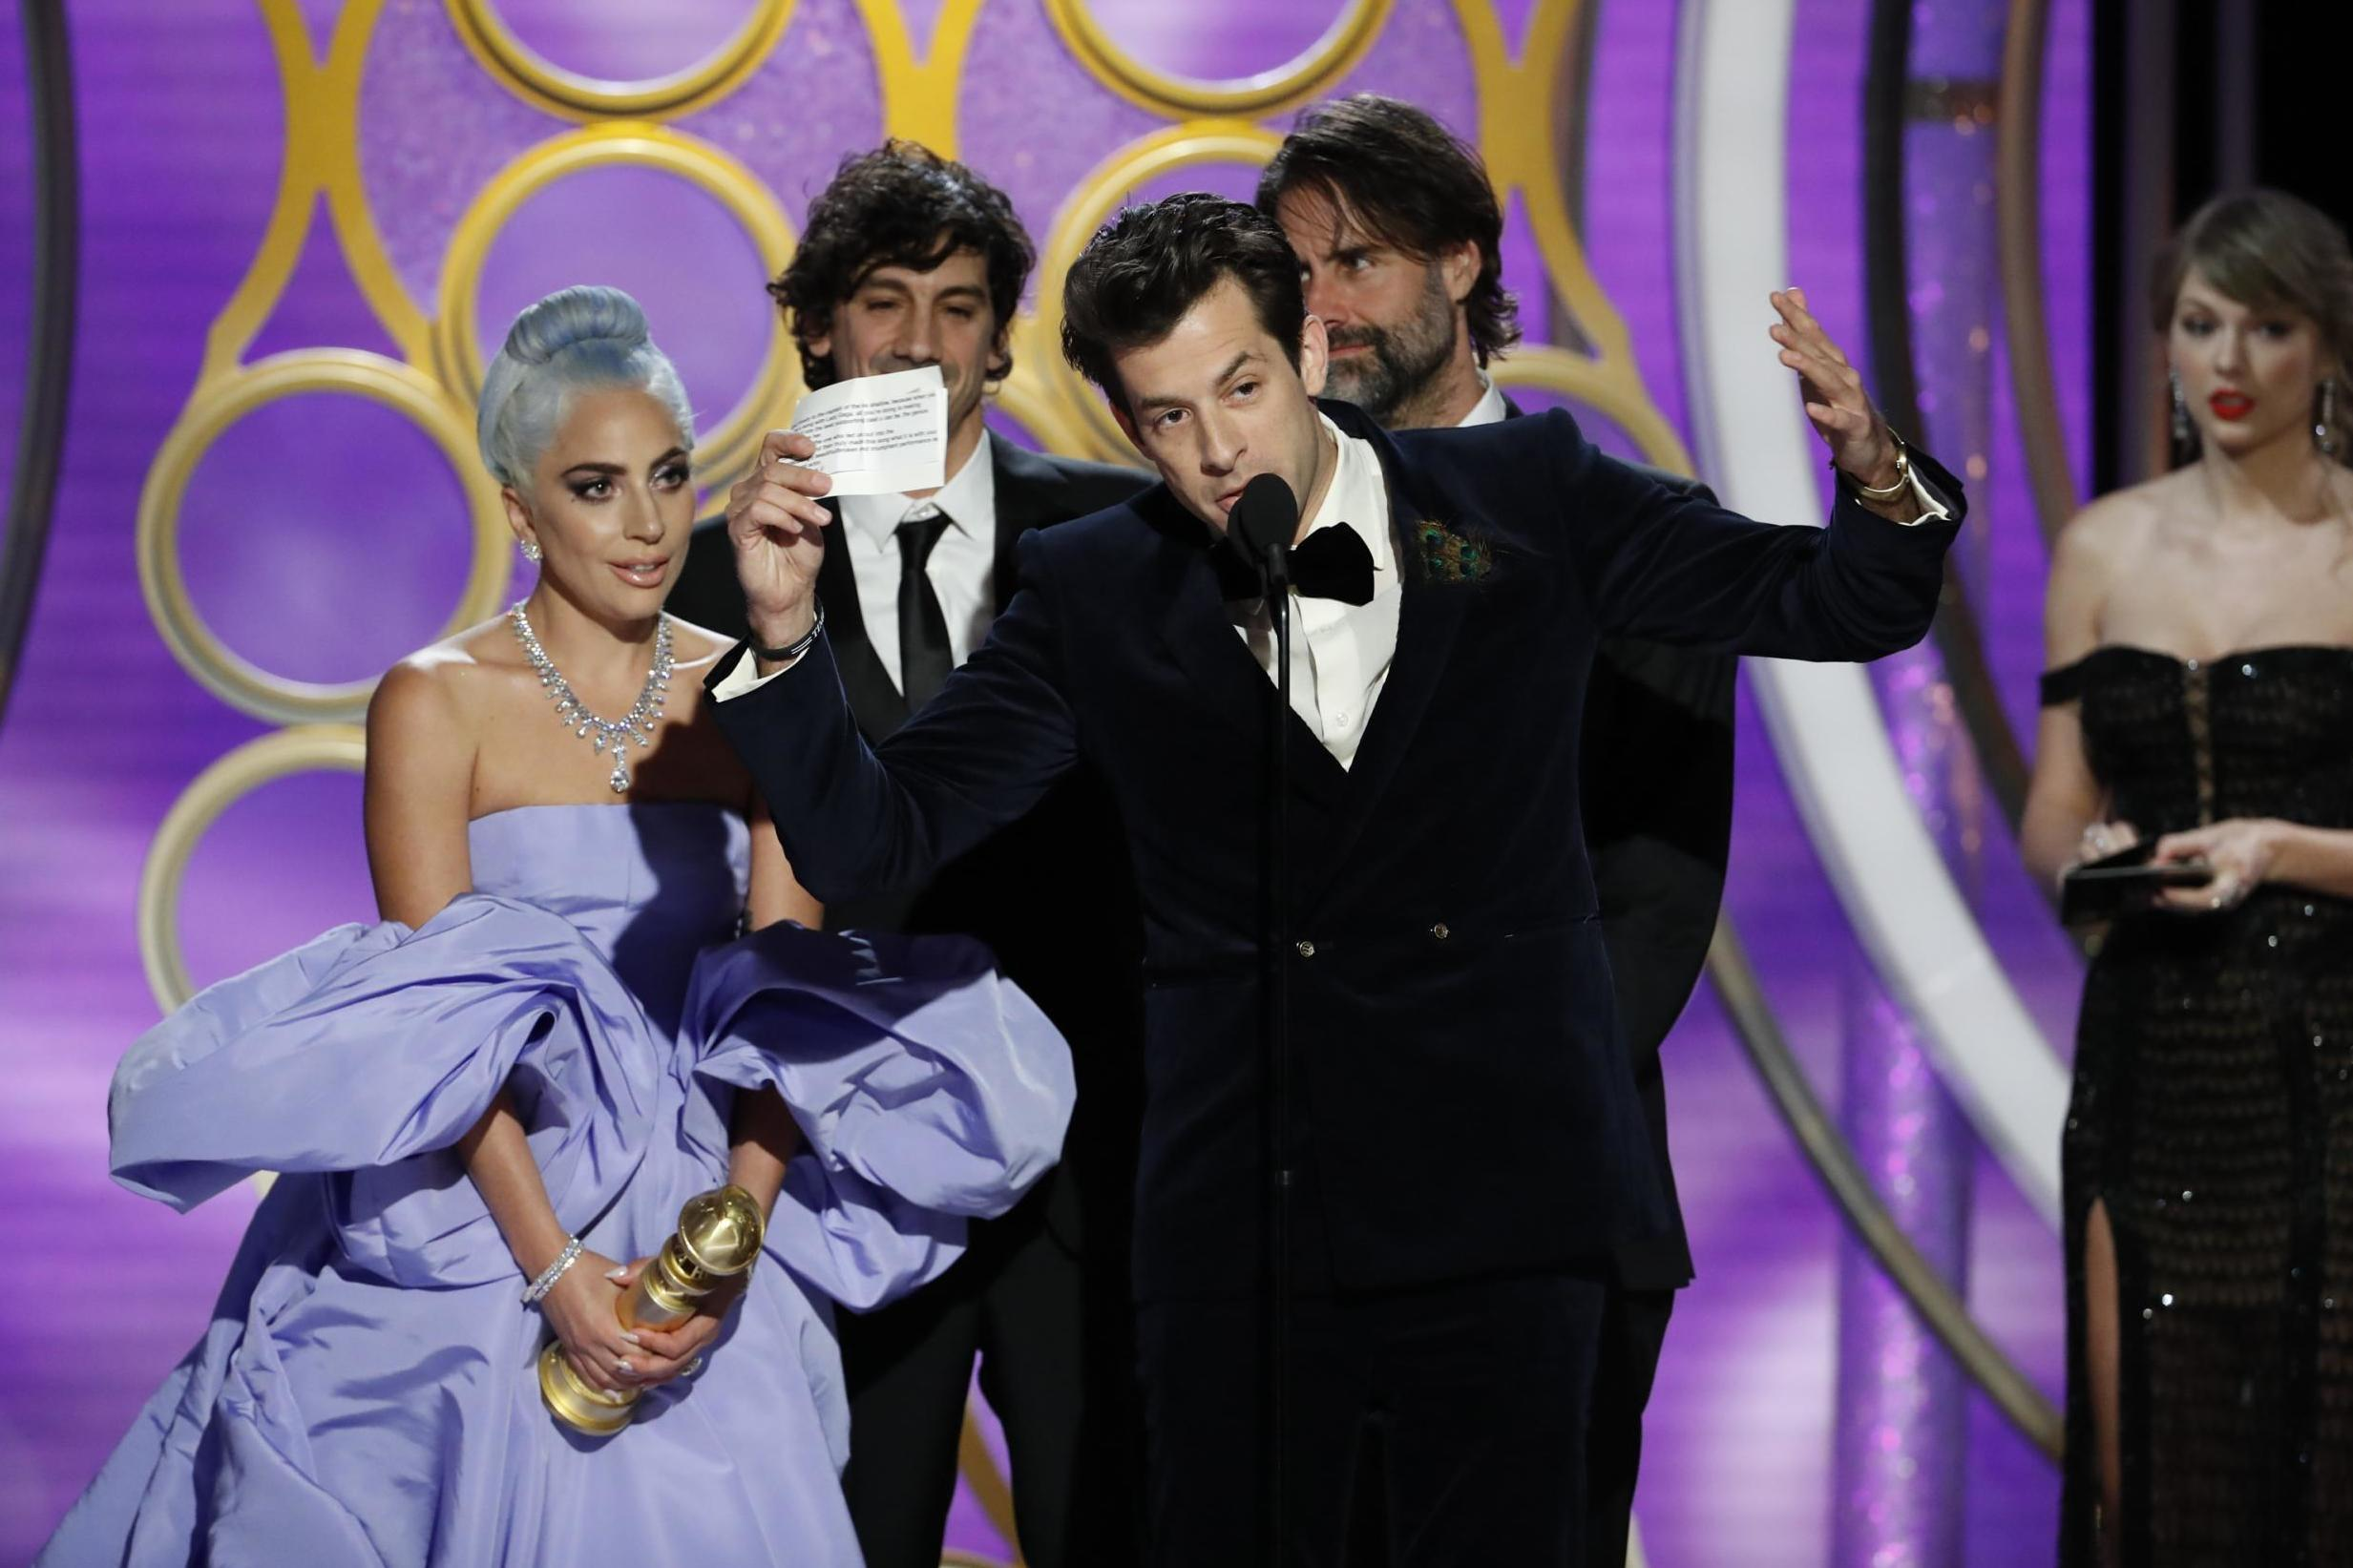 f4b9c6e8459 Golden Globes 2019: Viewers think Mark Ronson took Lady Gaga's spotlight  during acceptance speech for 'Shallow' | The Independent